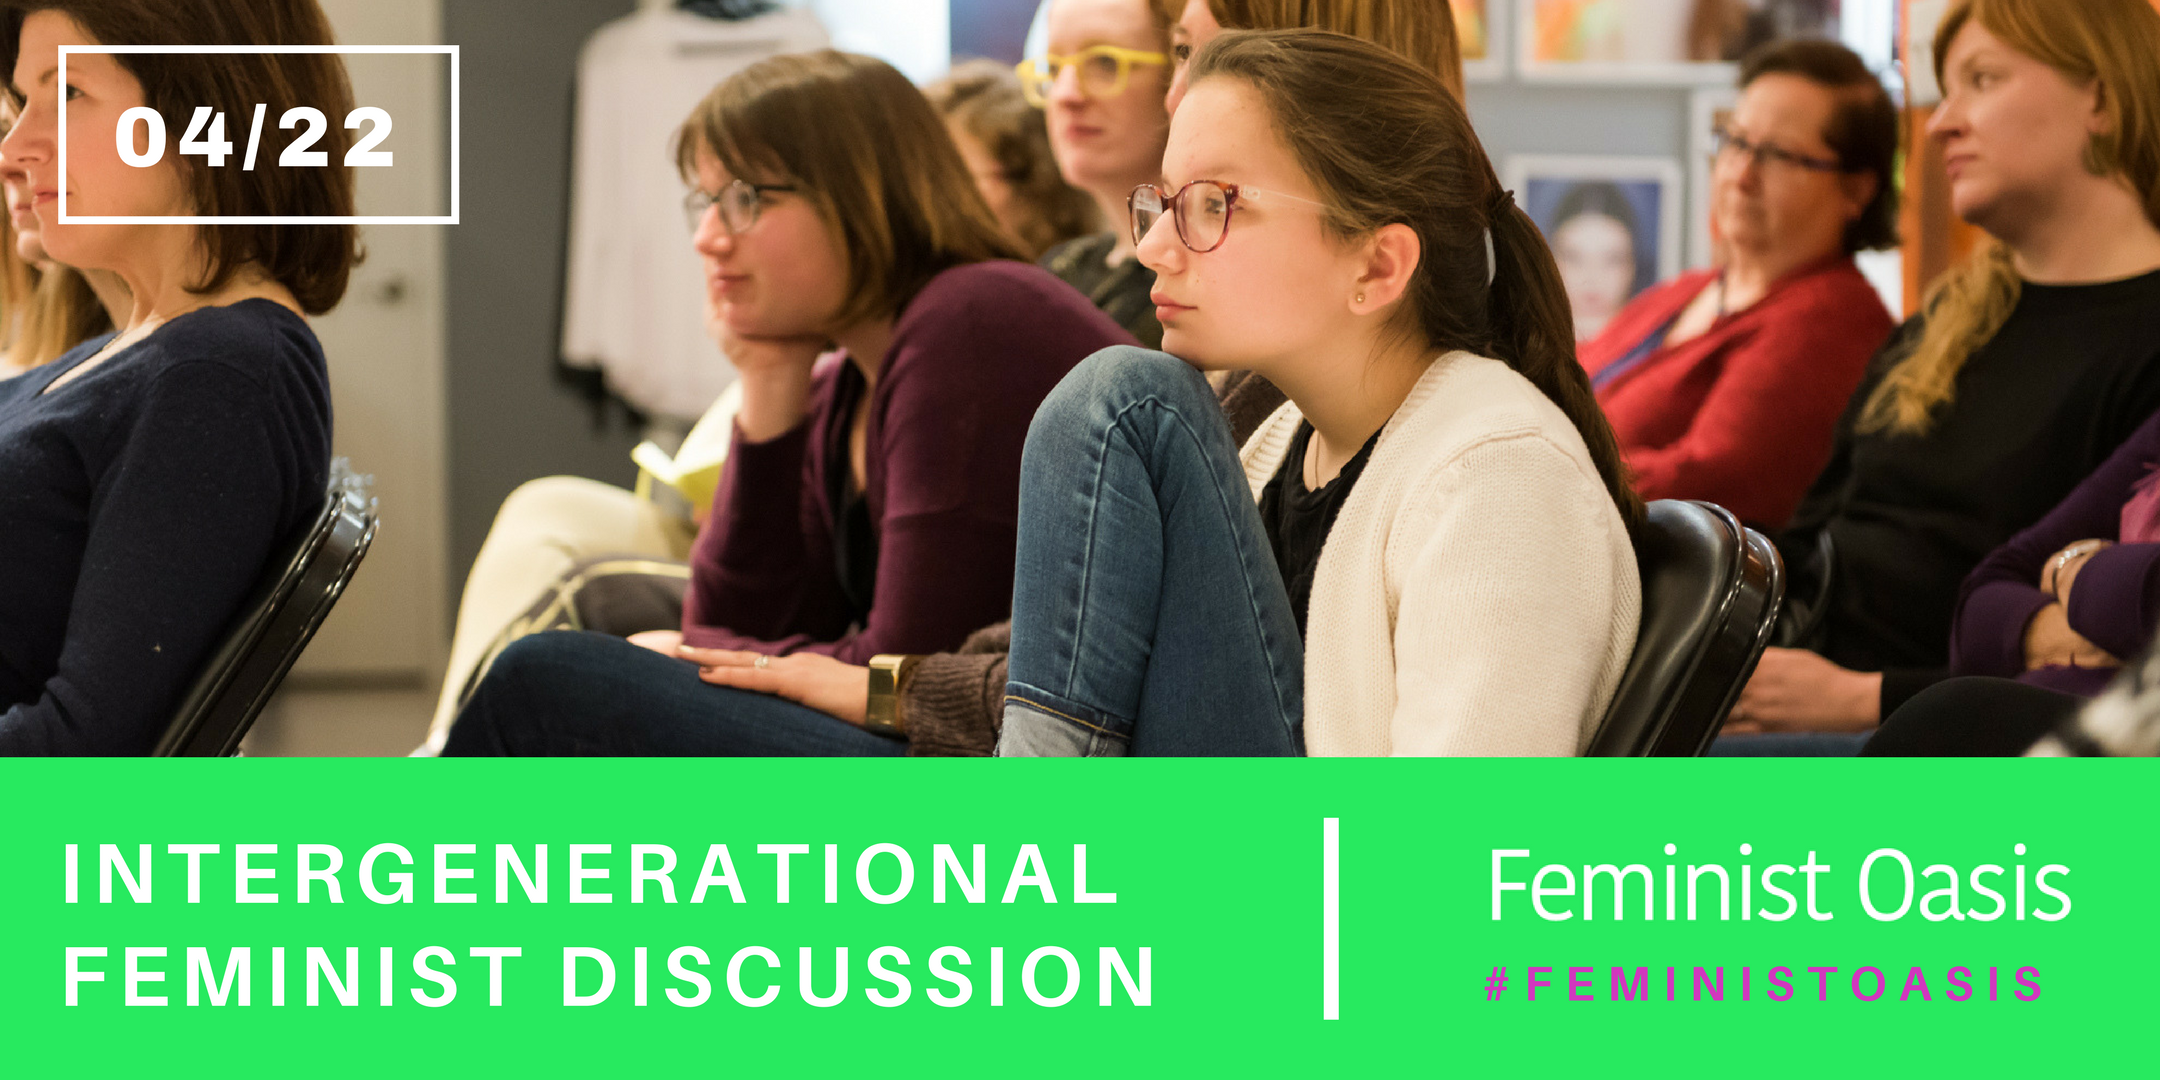 ANNOUNCING: Intergenerational Feminist Discussion 4/22/18 at The Dance Hall